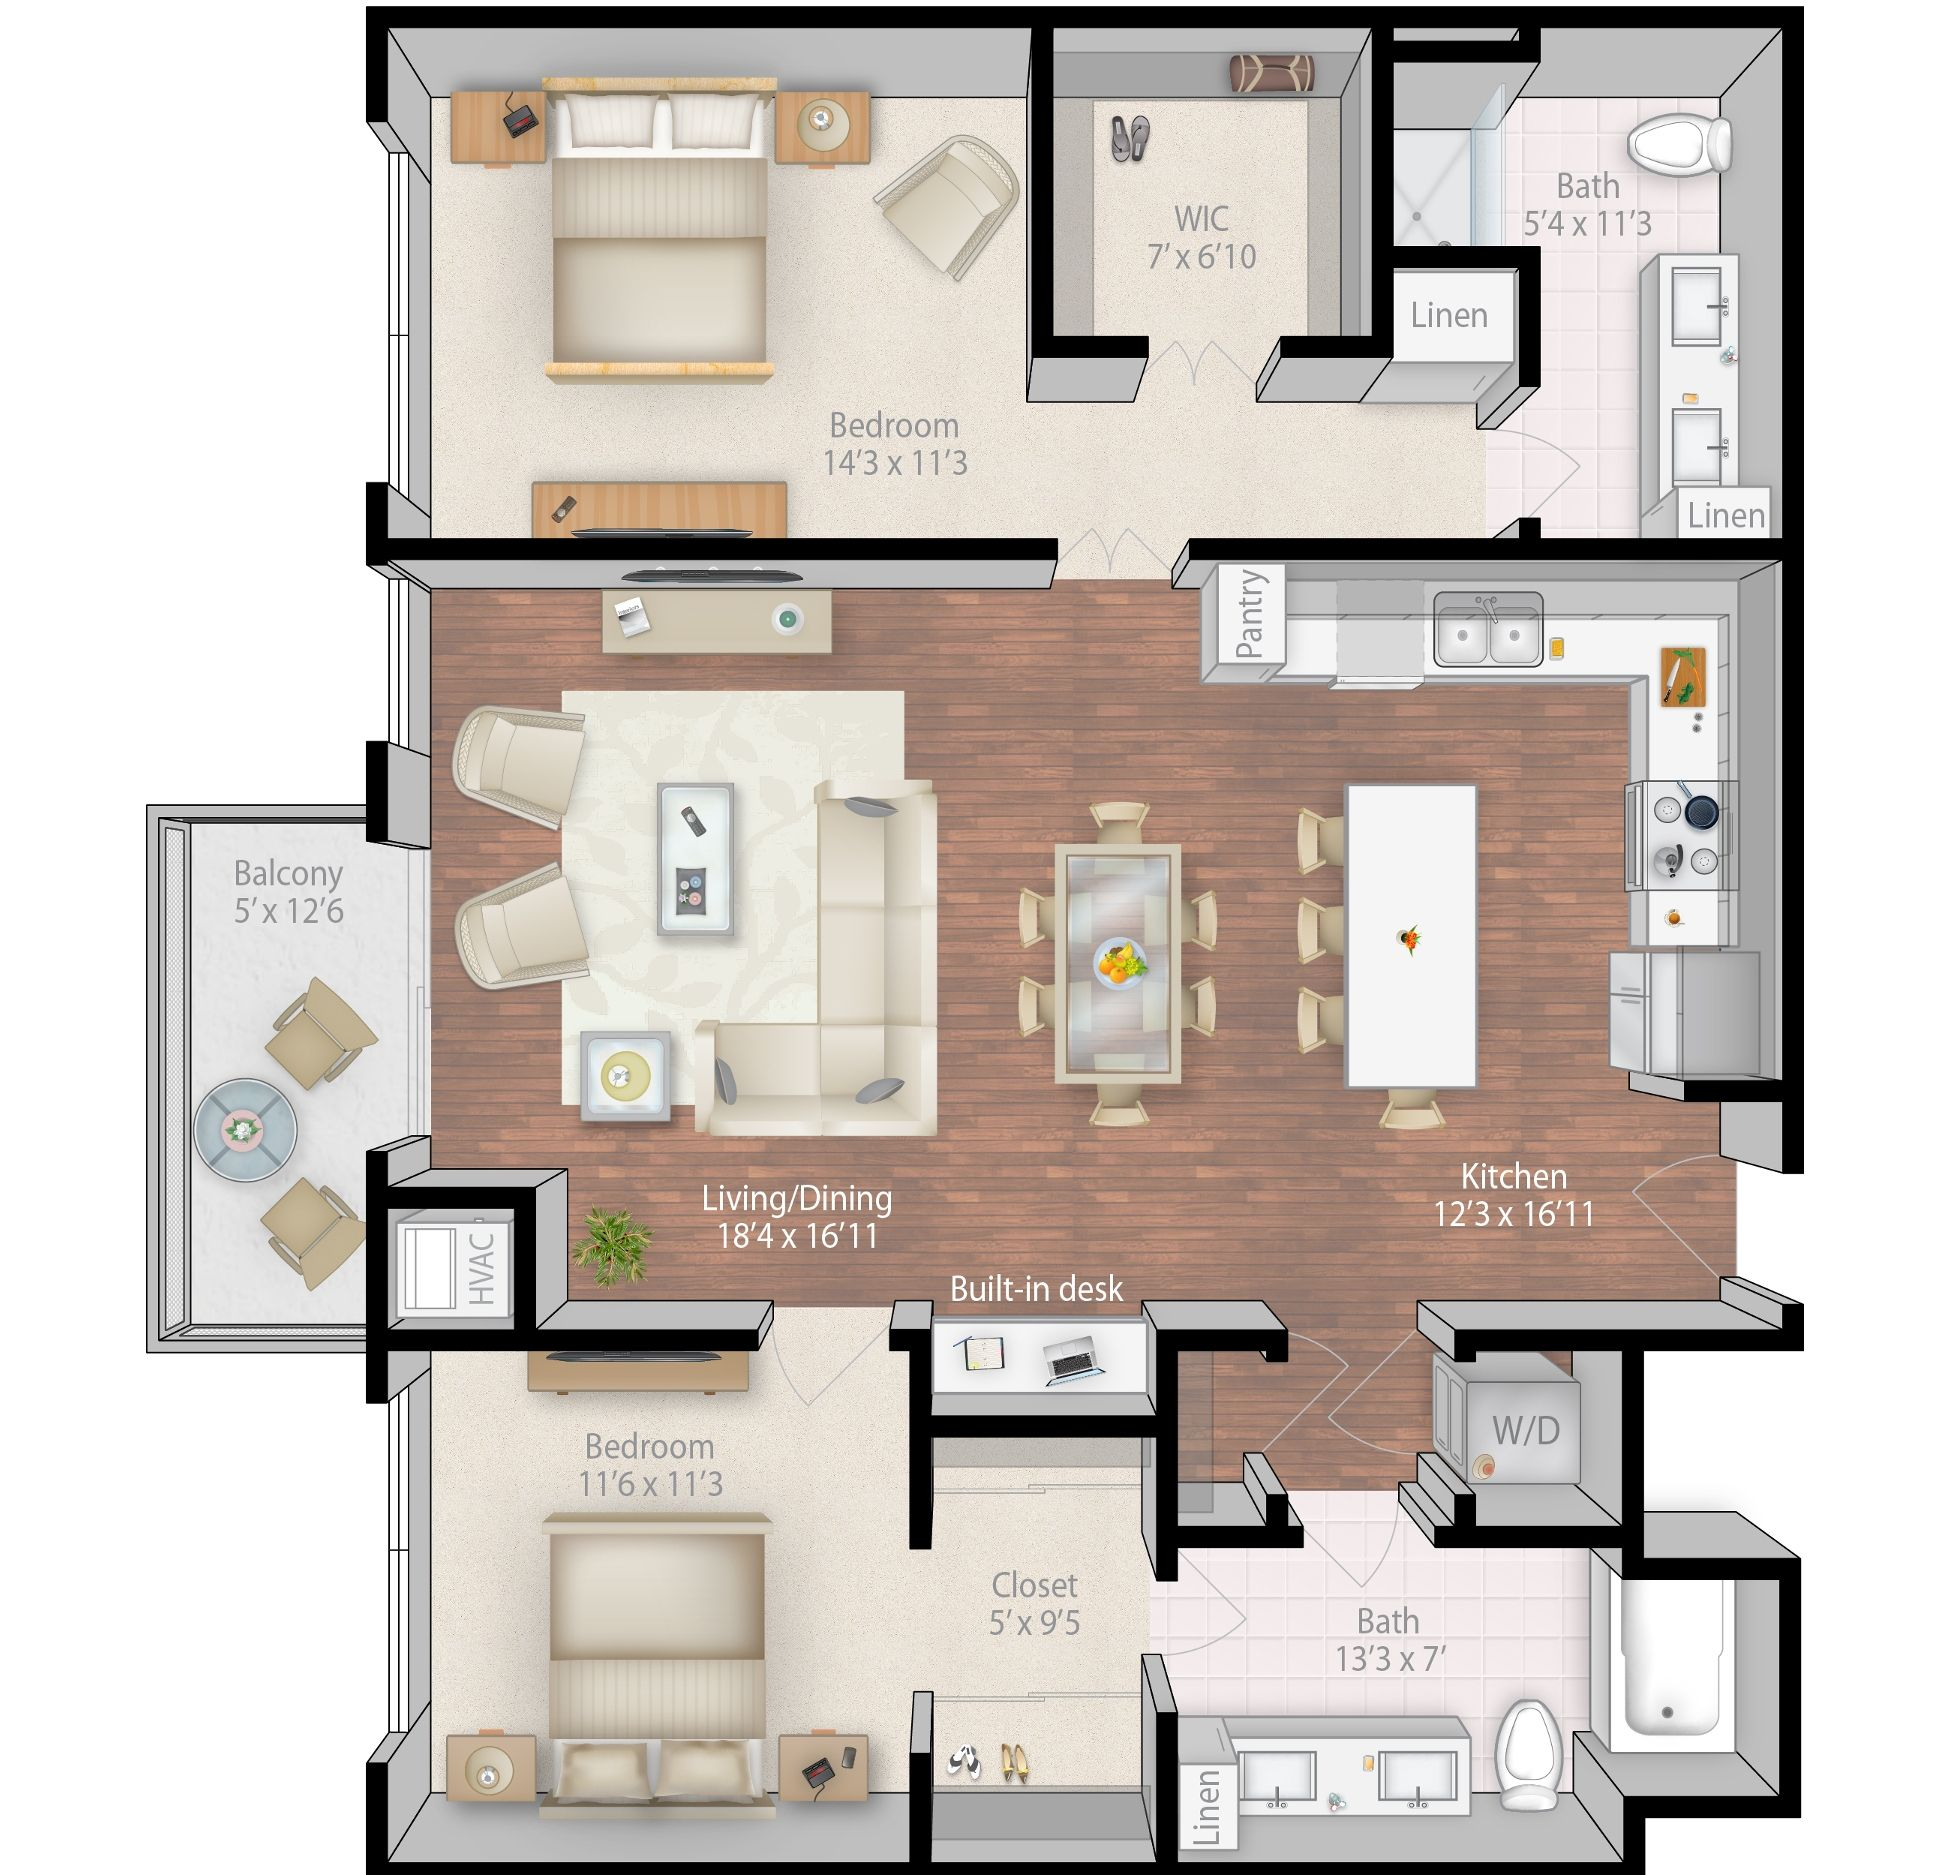 Luxury Condos Floor Plans Condo Floor Plans Apartment Floor Plans Luxurious Bedrooms